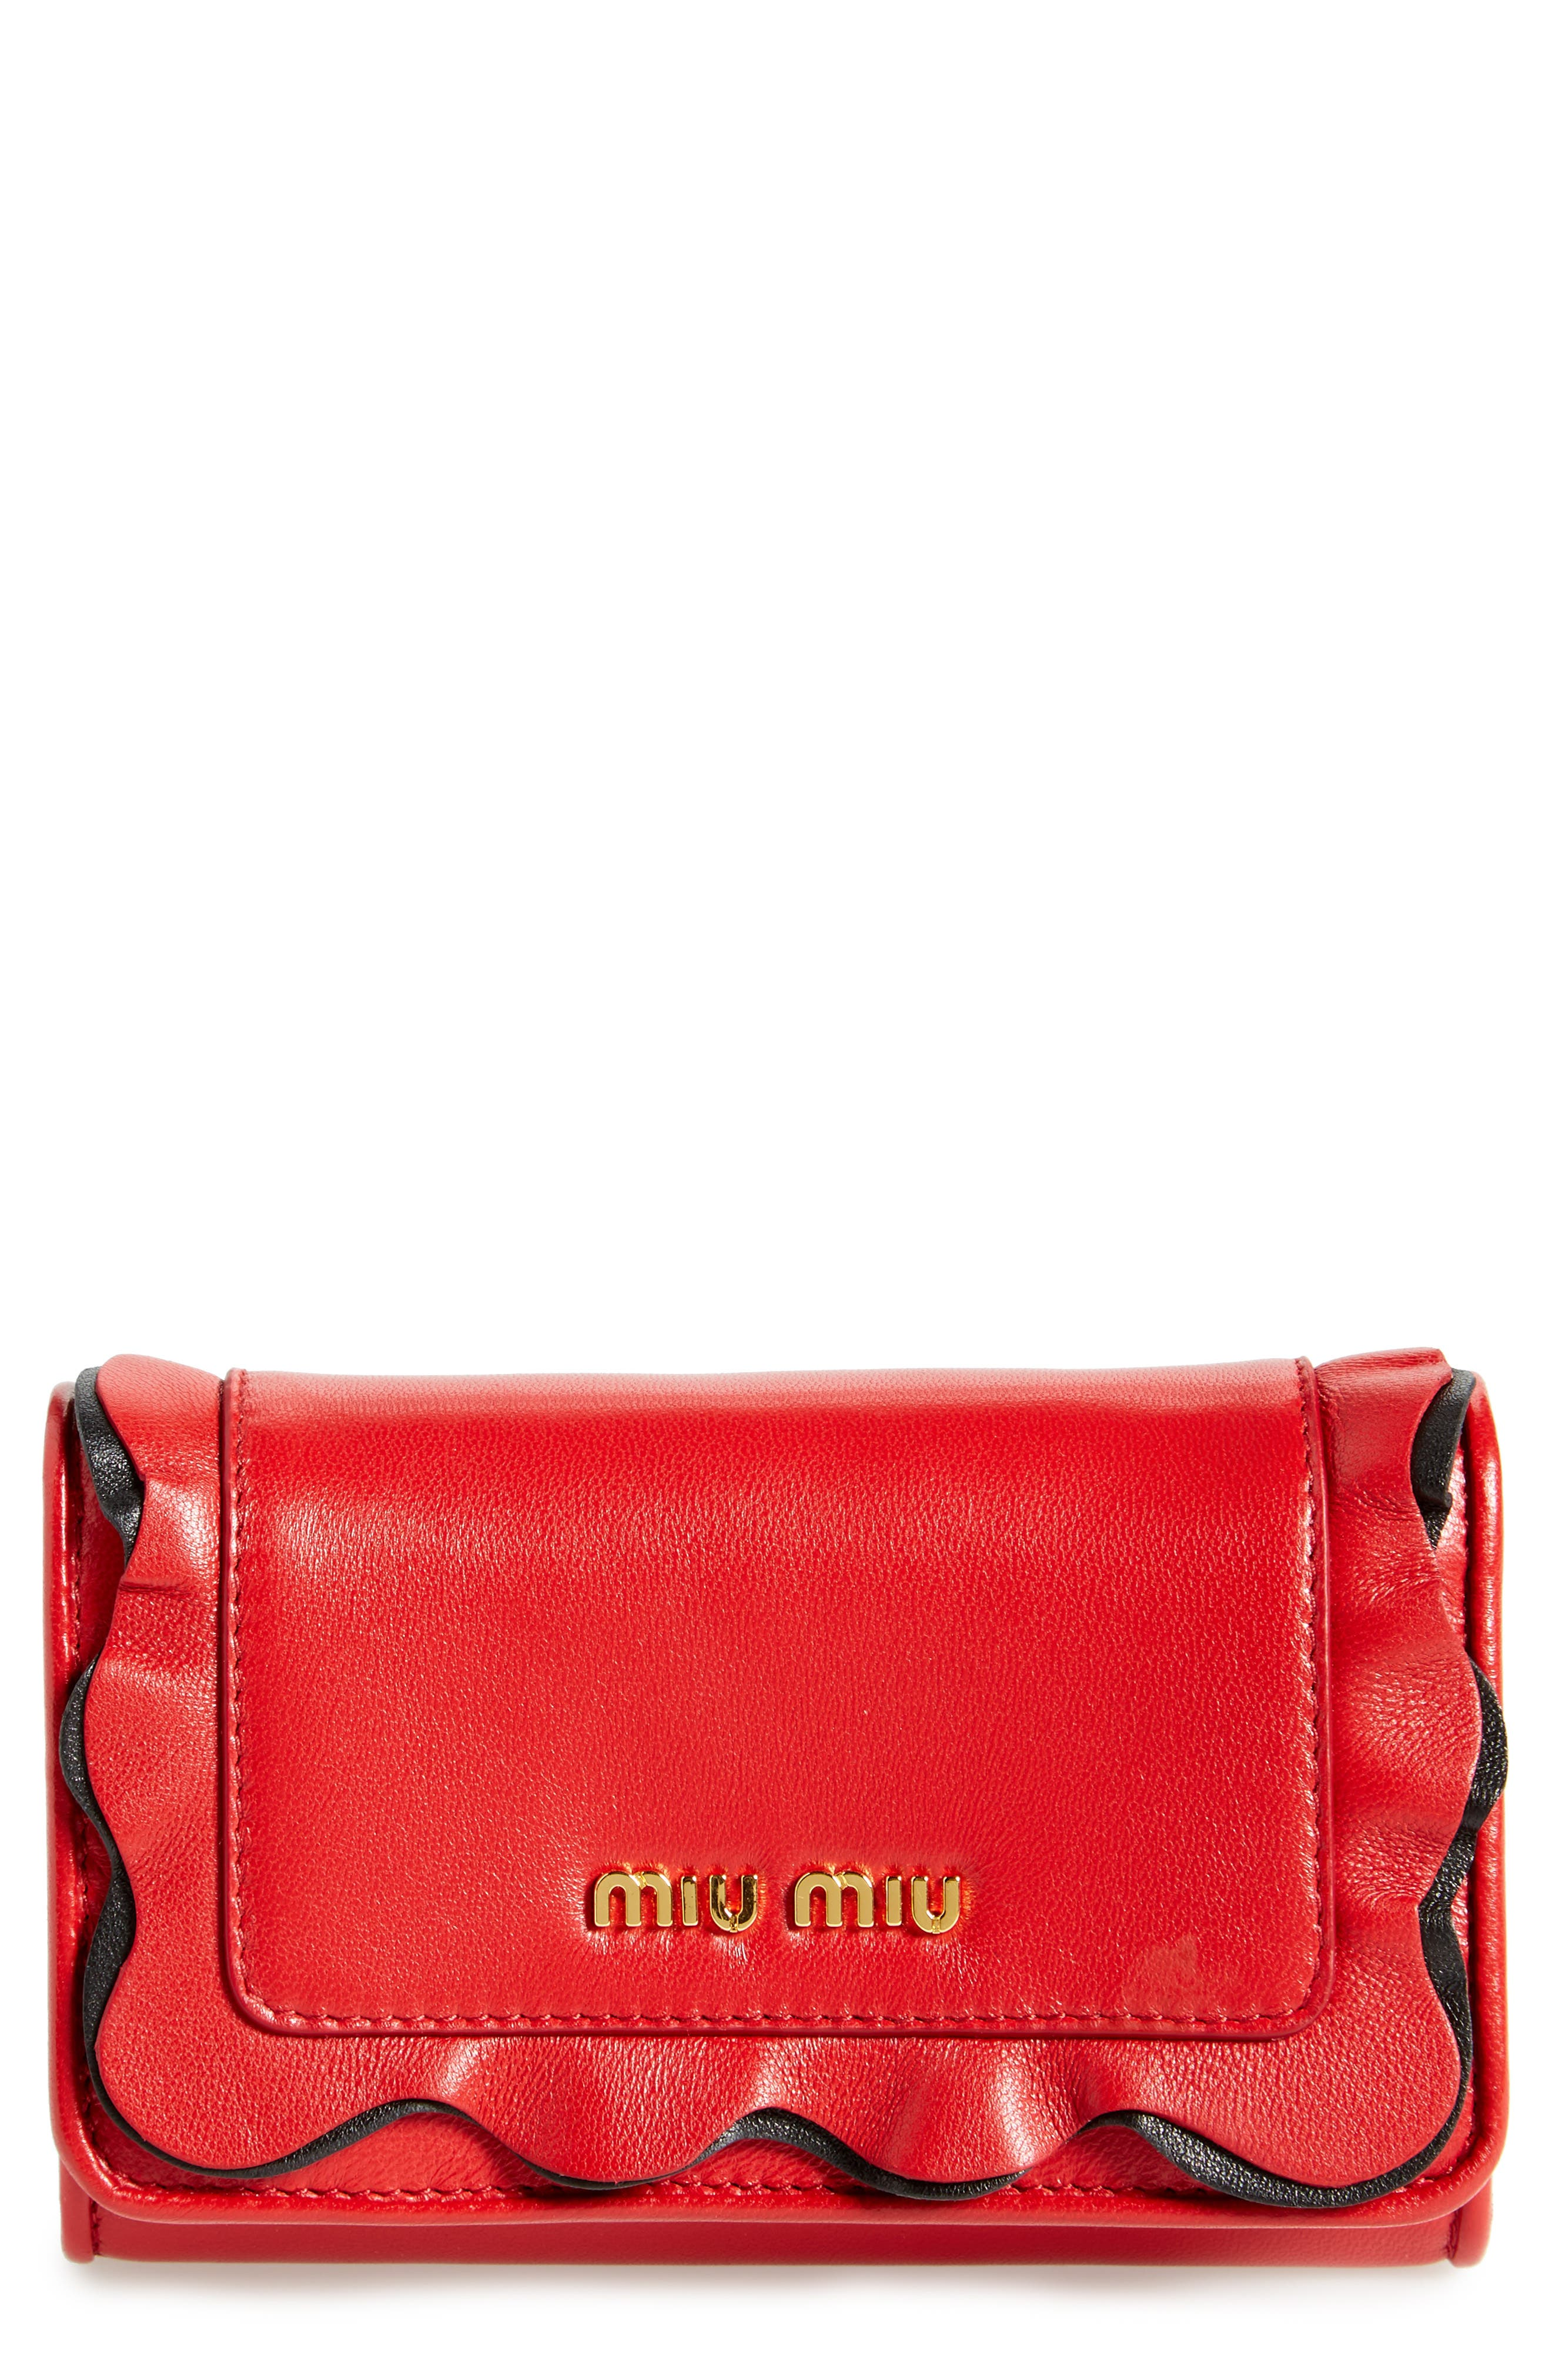 Miu Miu Rouches Nappa Leather French Wallet